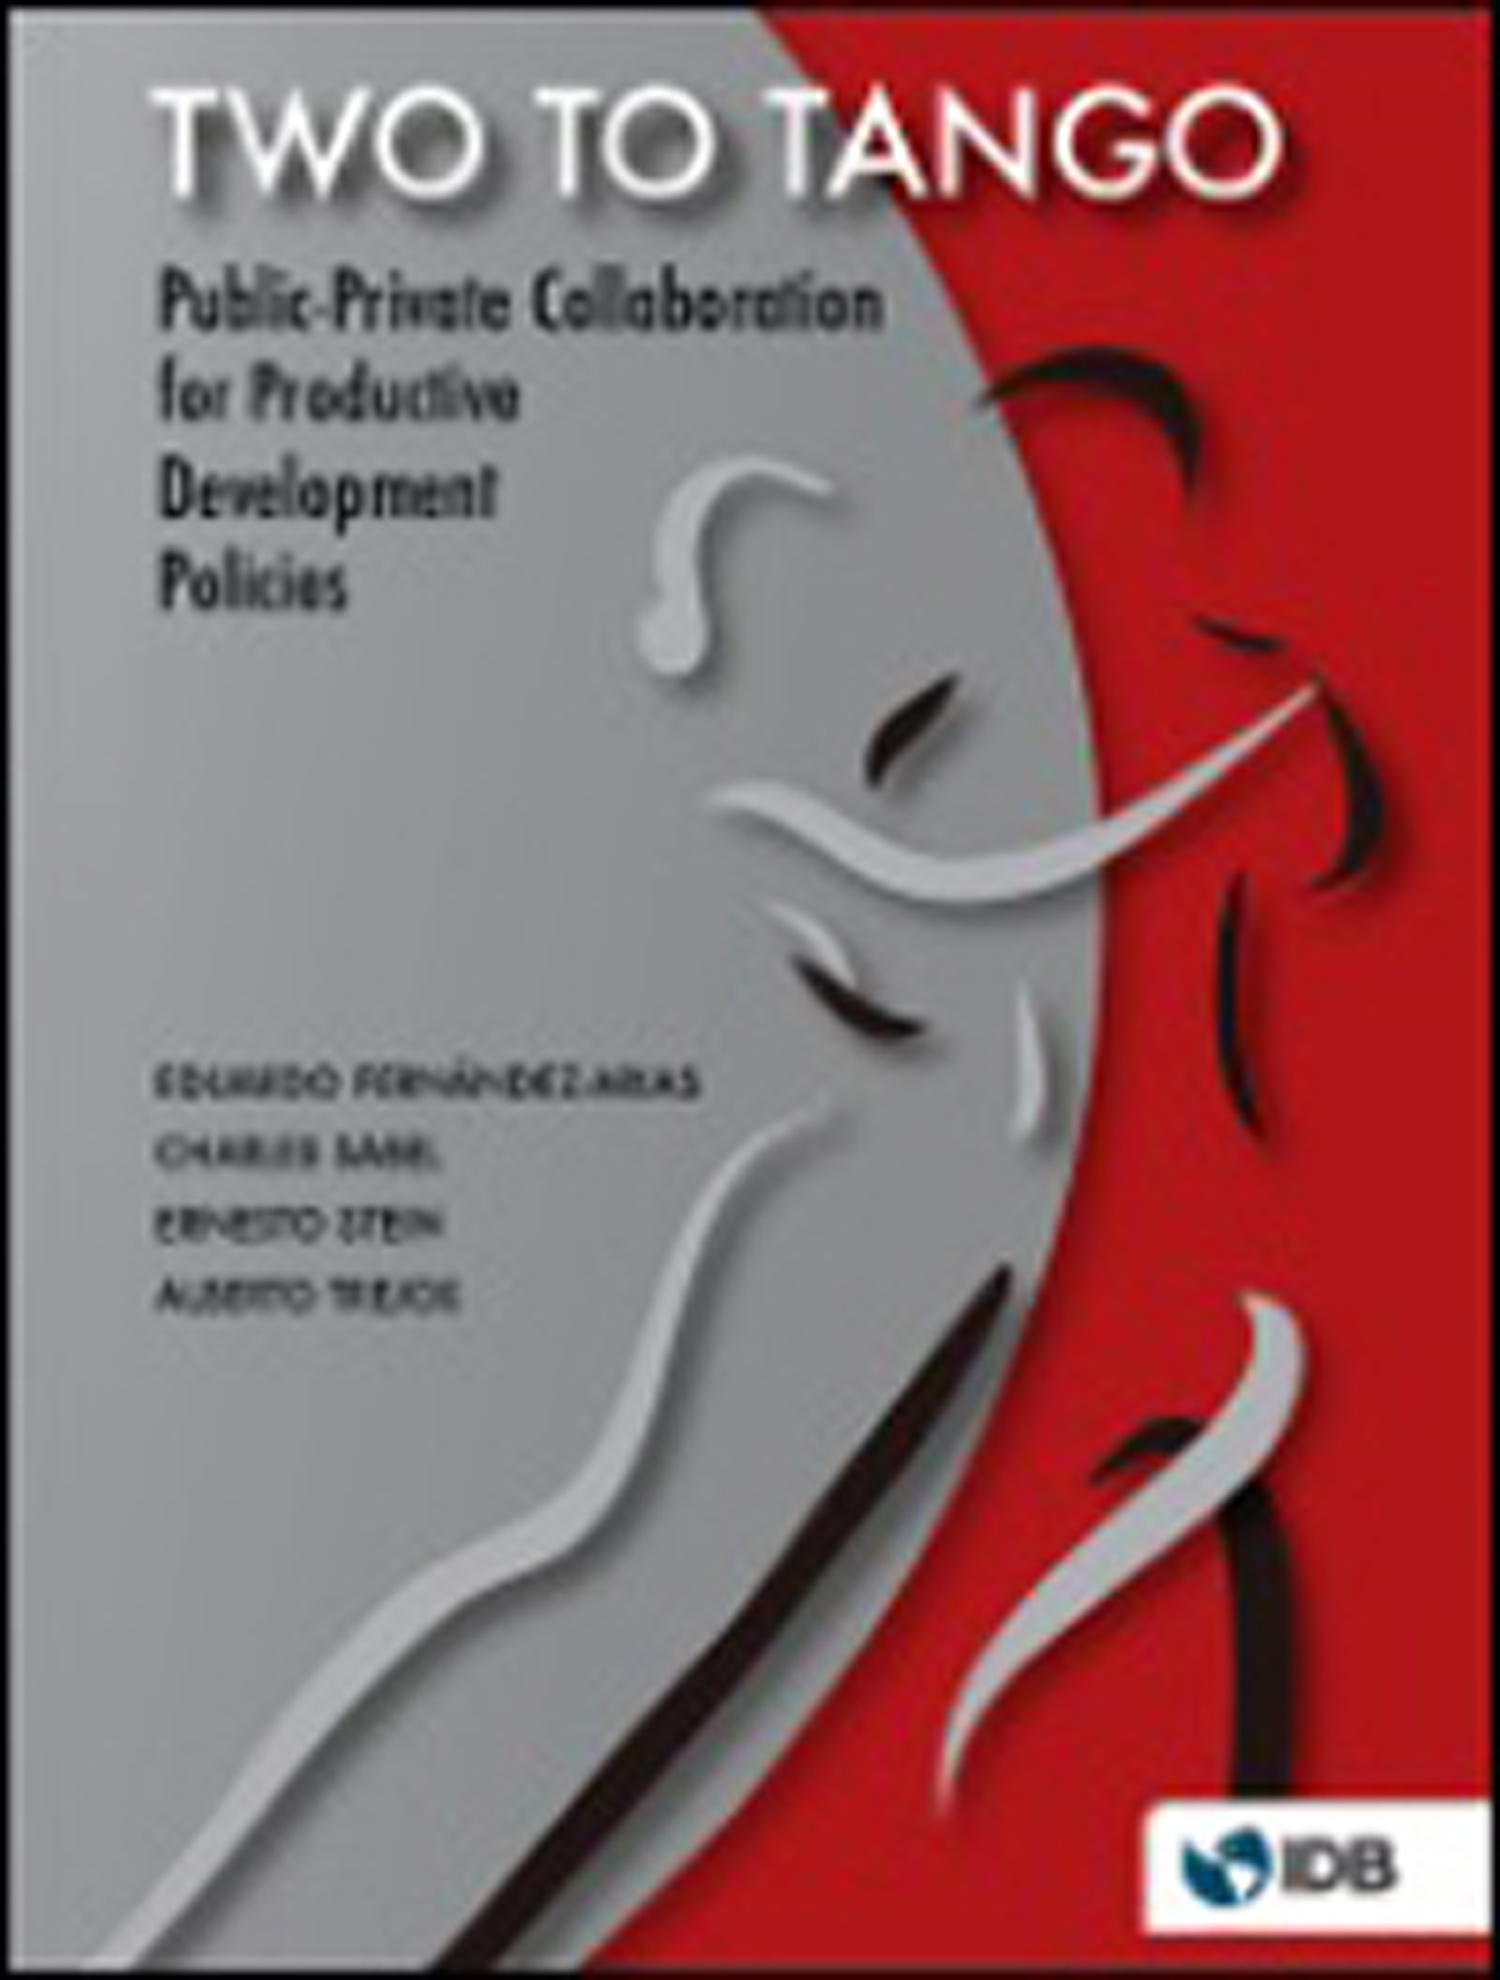 Two to tango : public-private collaboration for productive development policies